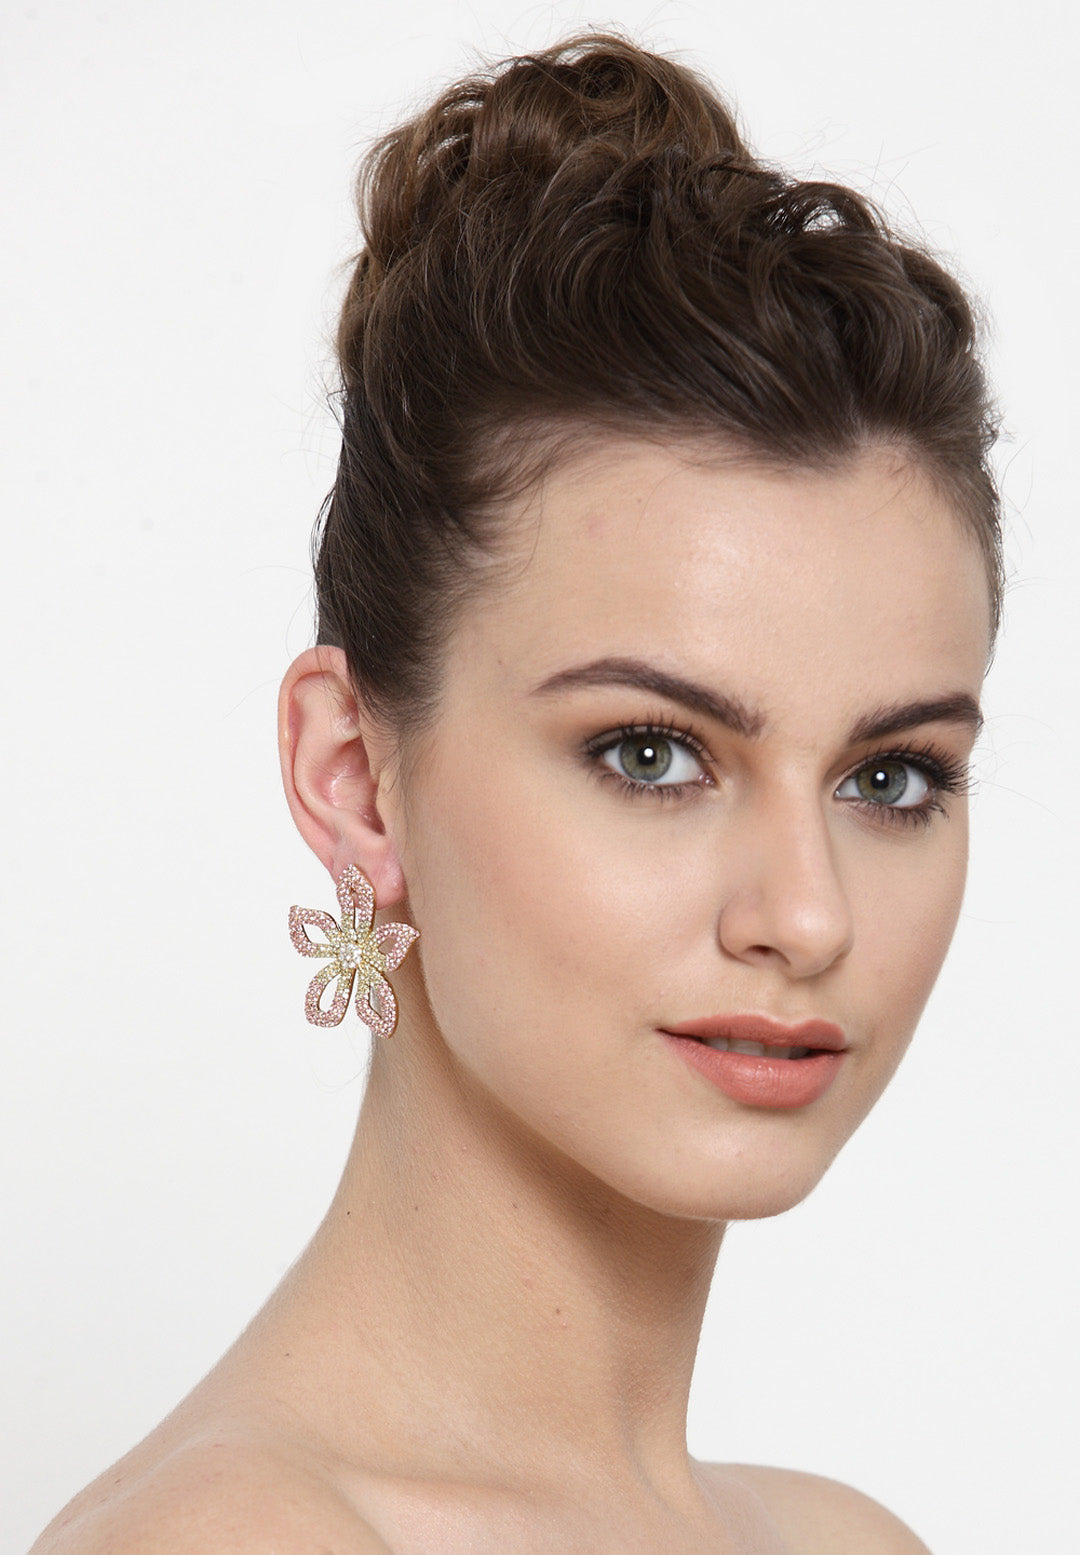 Avant-Garde Paris Statement Vintage Bohemian Big Crystal Flower Stud Earrings